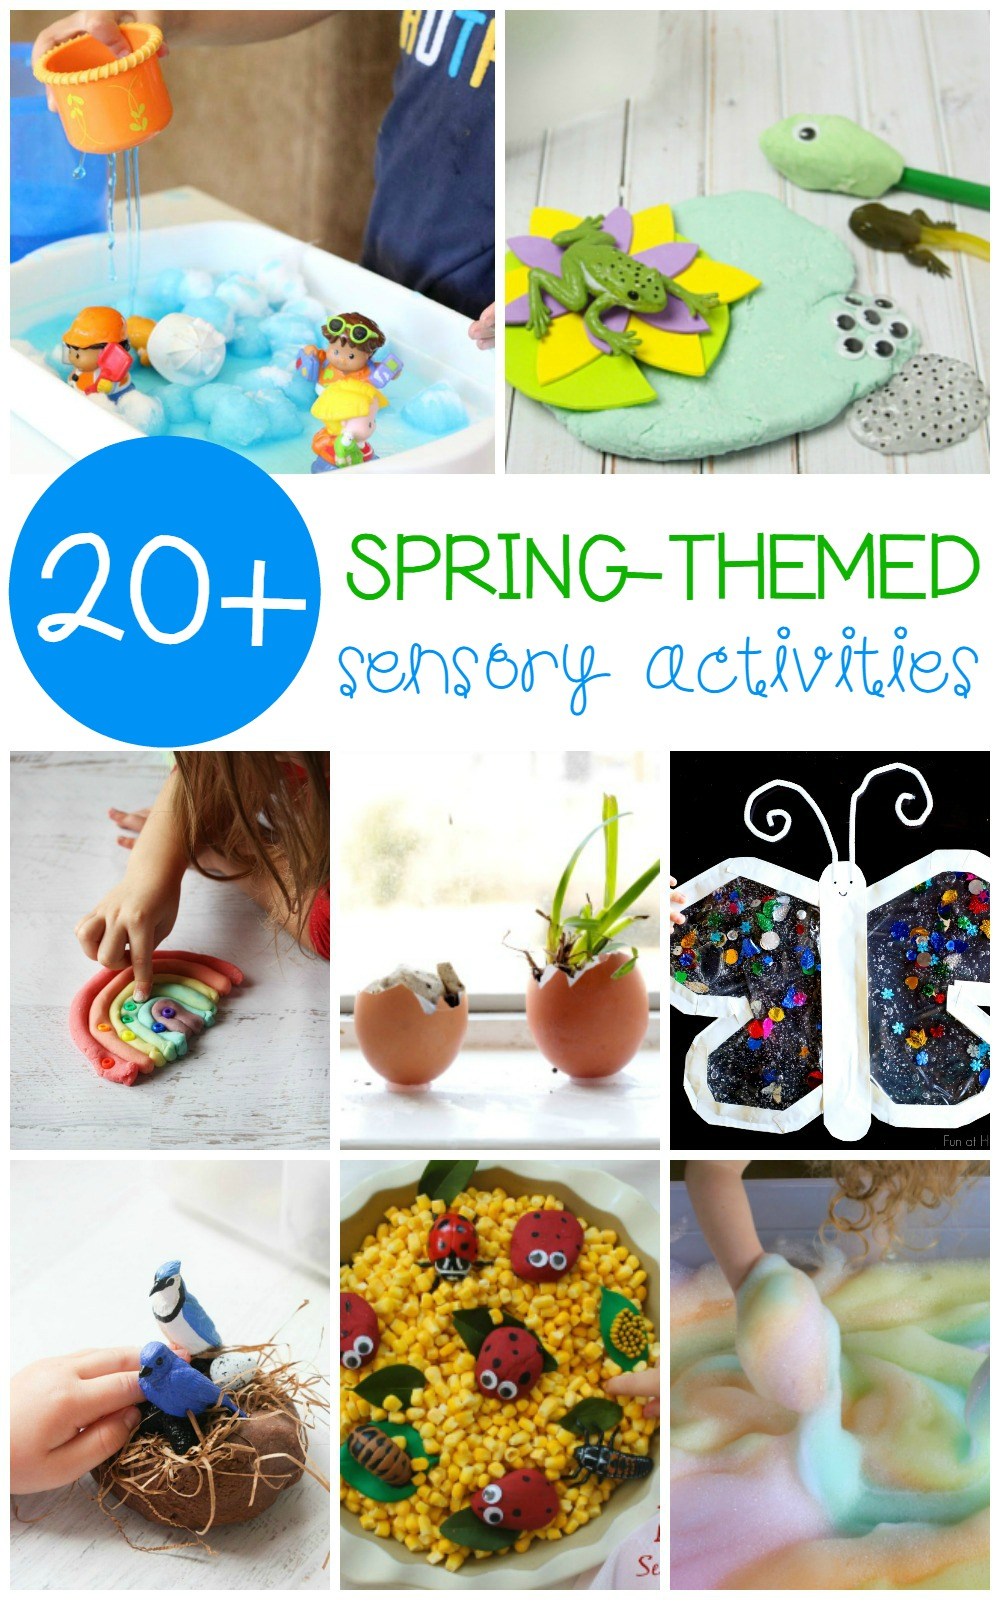 Kids will have so much fun with these spring sensory activities that engage all the senses including sight, smell, taste, touch, and hearing.